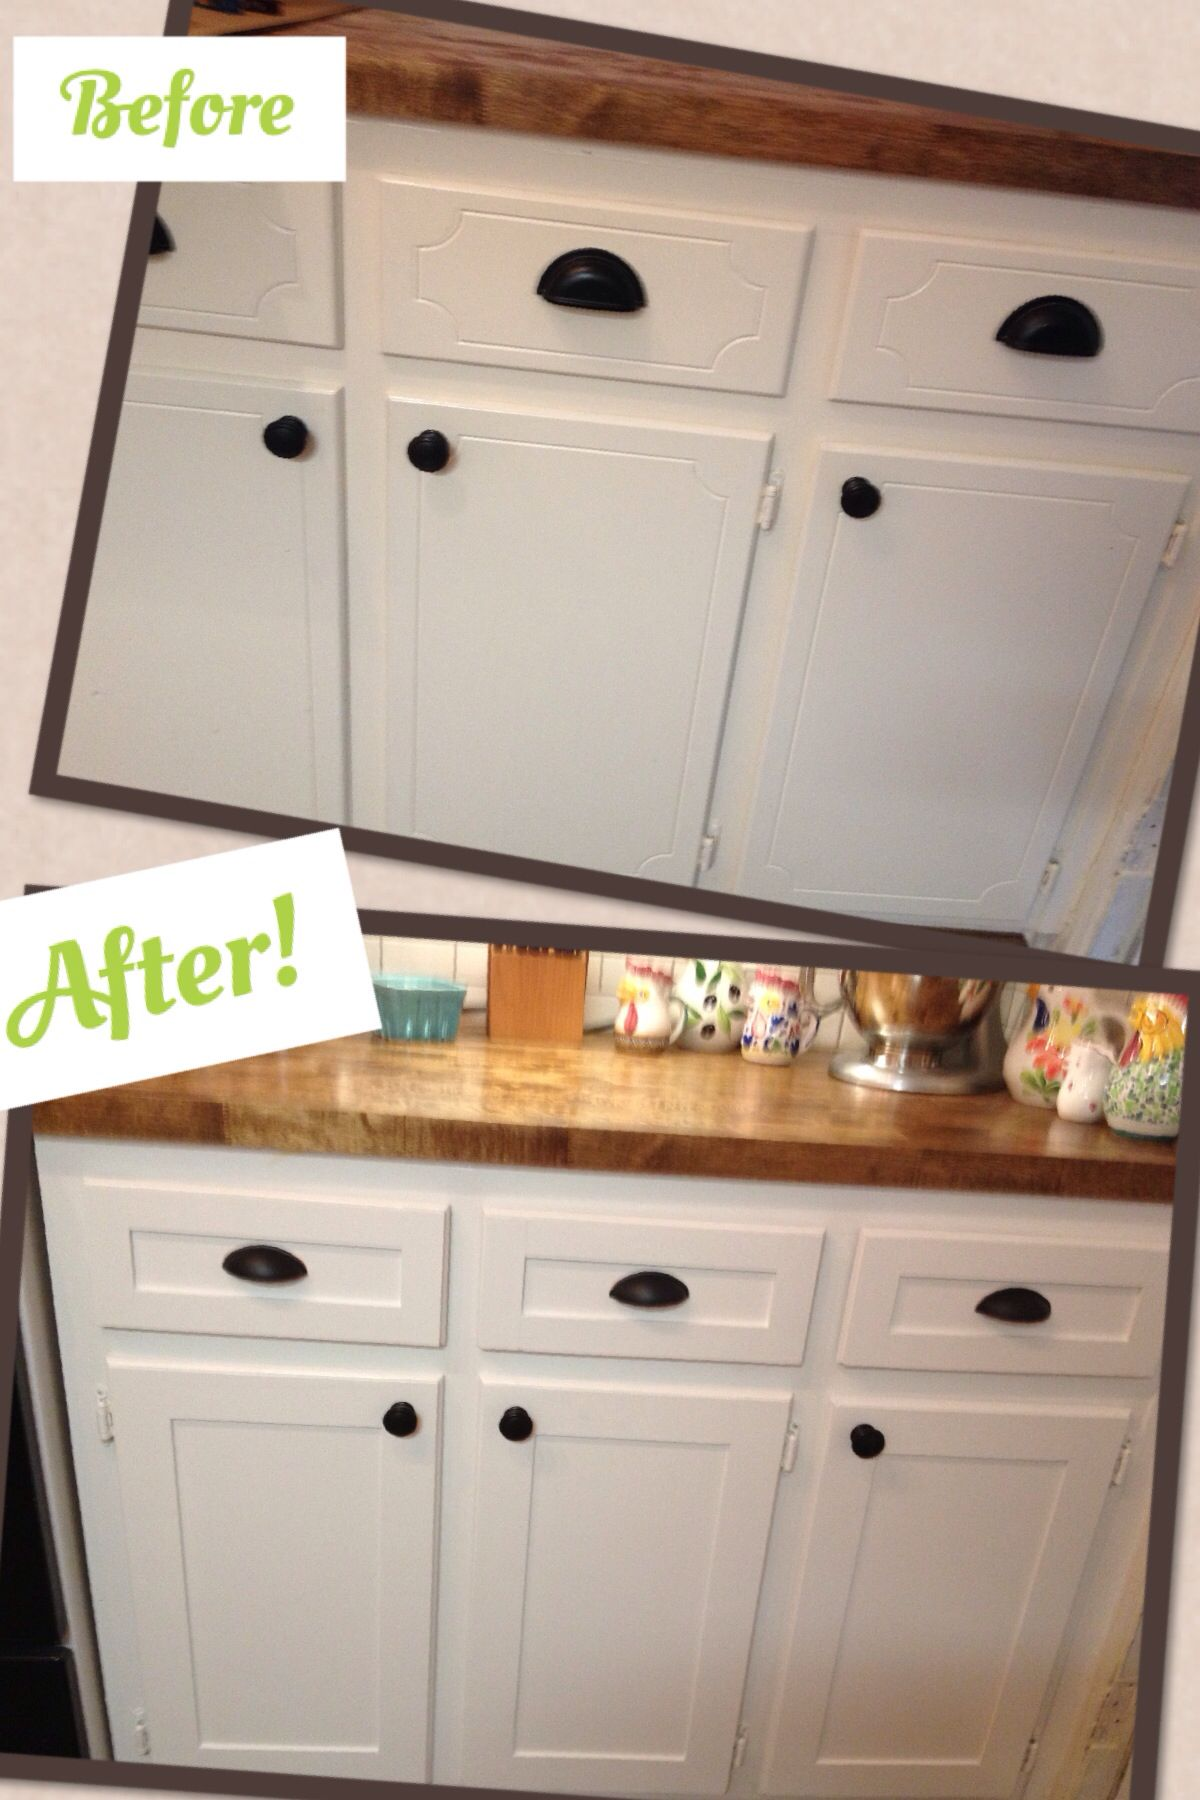 Kitchen cabinet refacing project - DIY shaker trim - done! Before ...